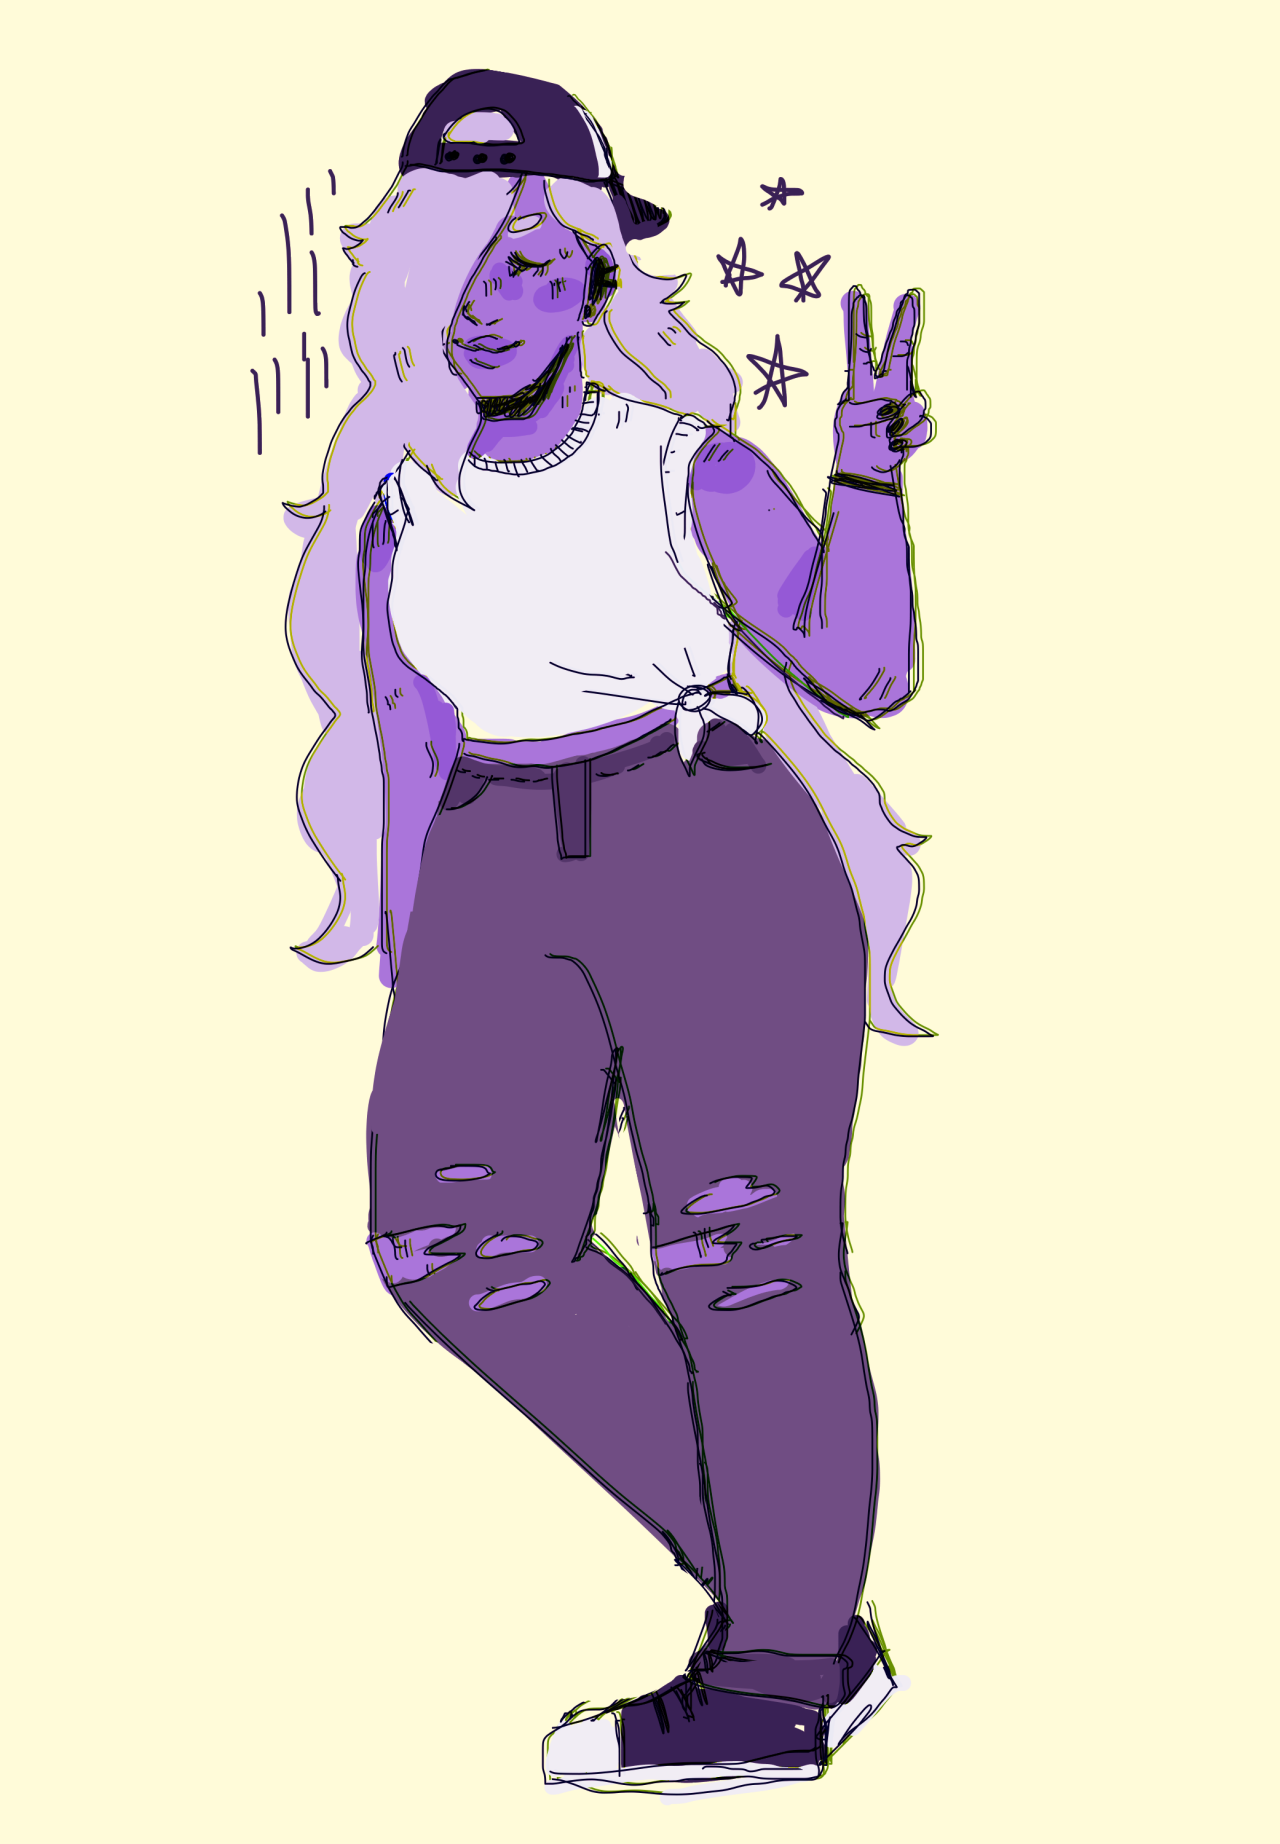 good news: i continue to be very gay 4 amethyst